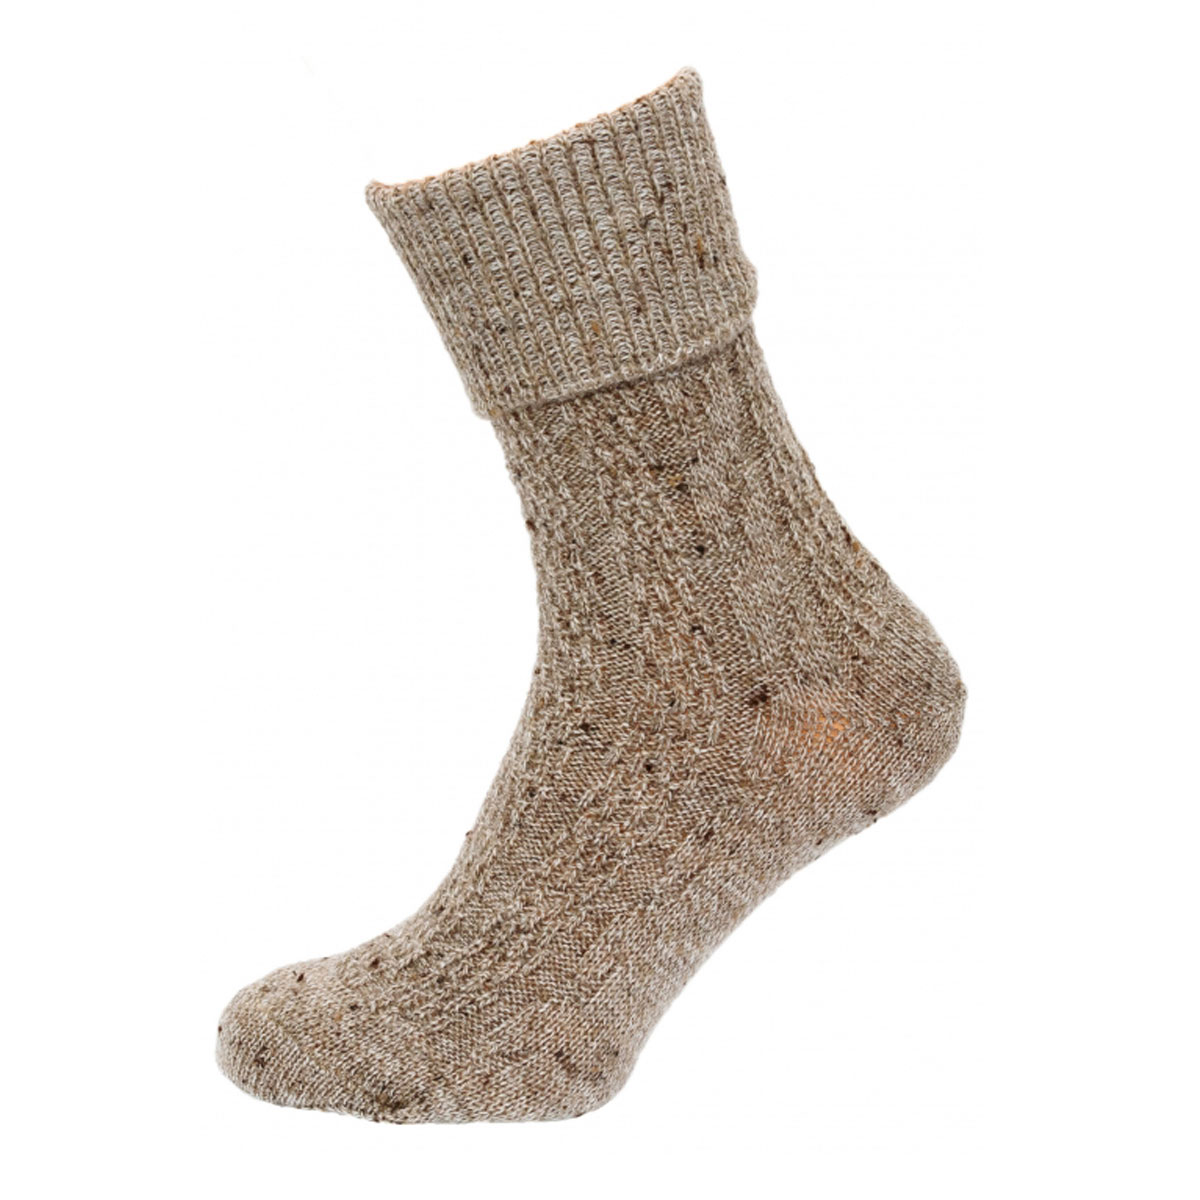 SIMPLE DARK BROWN FEMALE SOCKS